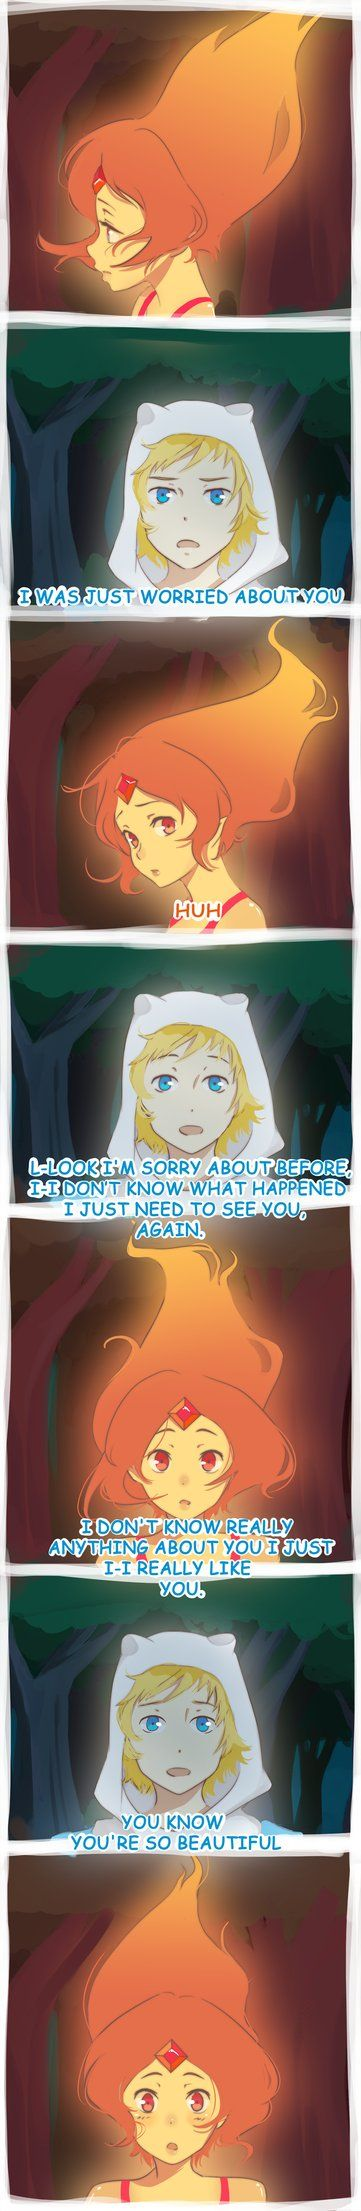 An anime take on AT by Maruta-chan6 on Deviant Art!    this is so cute  I wish there were spinoff episodes..